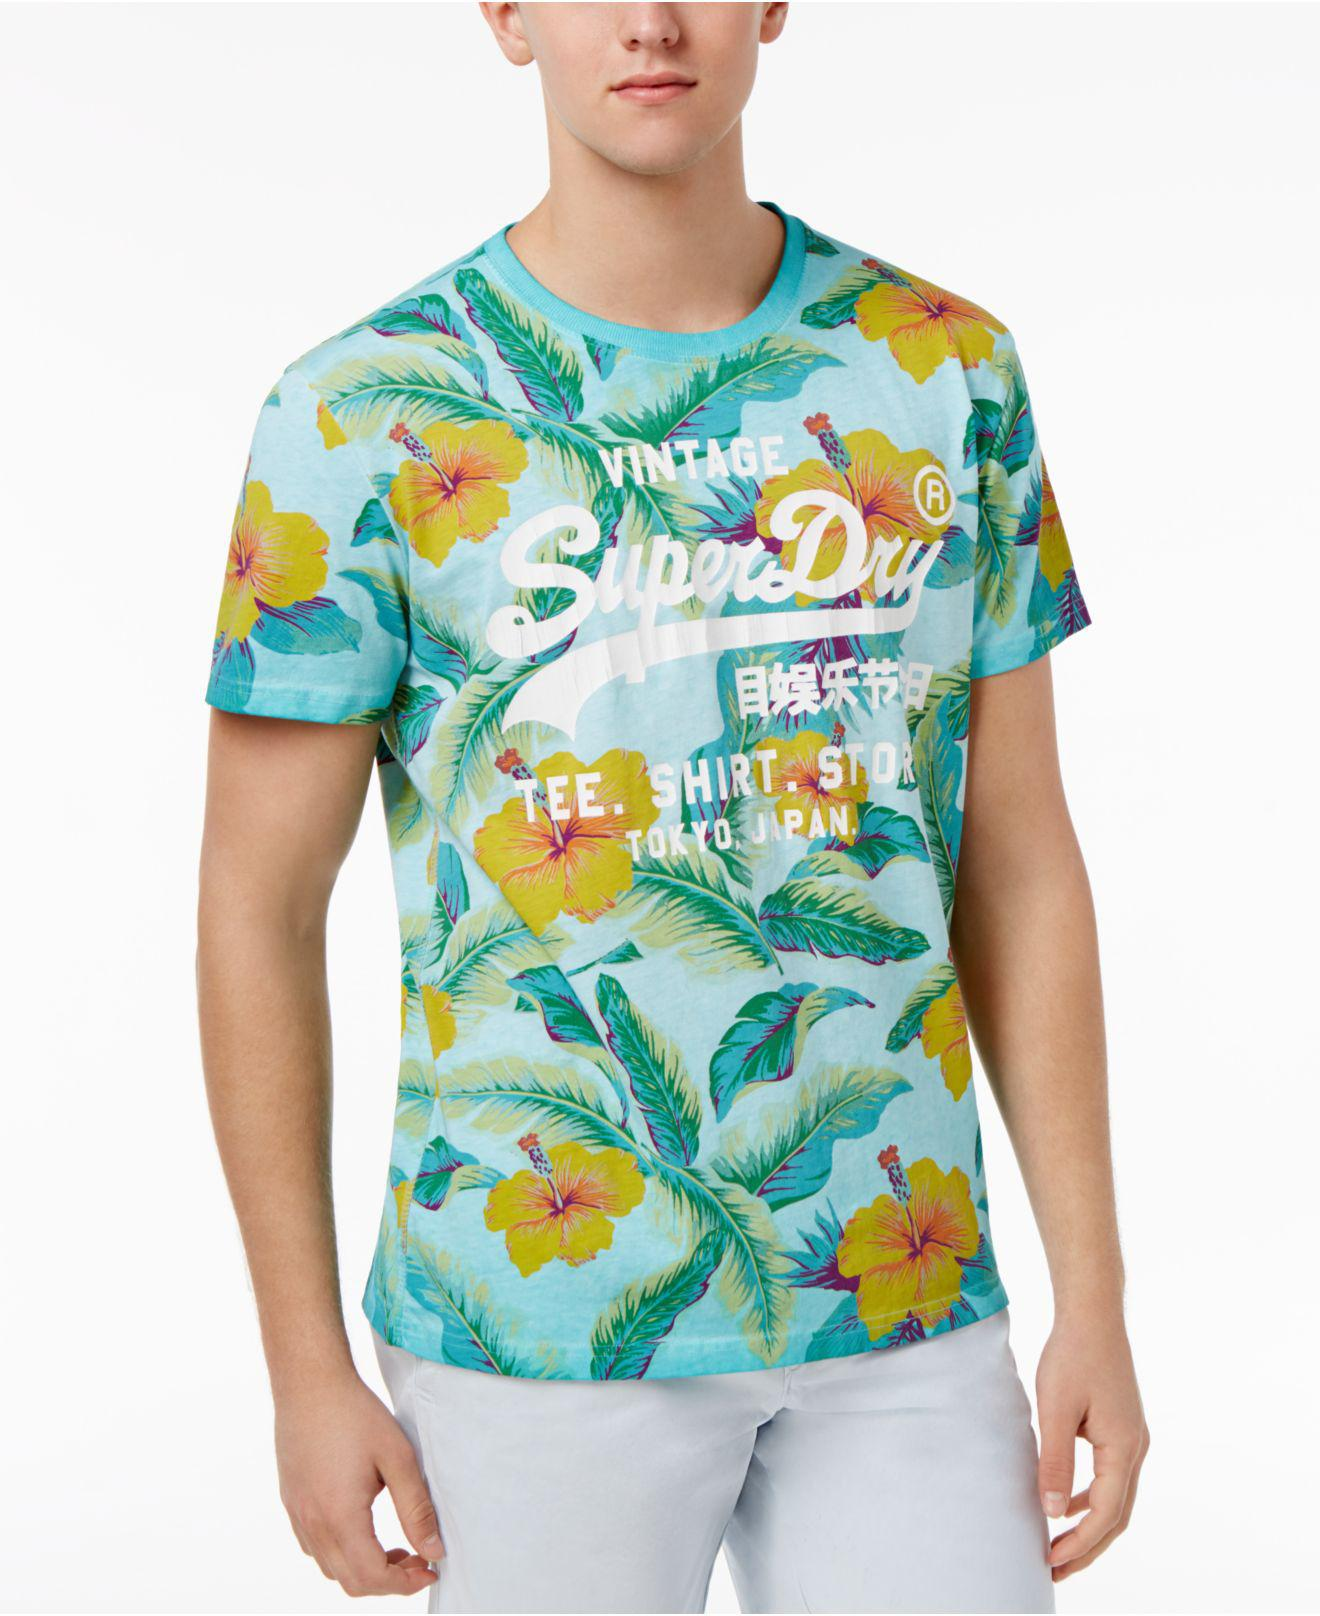 11dc3cd90 Superdry Surf Store Floral Graphic-print Logo Cotton T-shirt in Blue ...